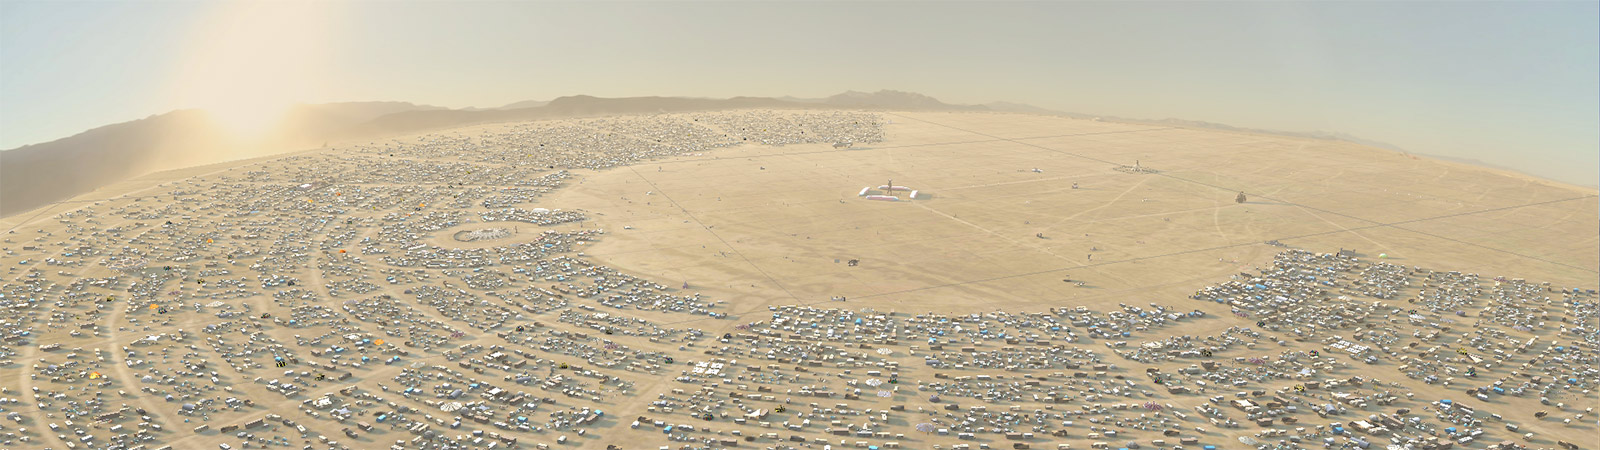 Burning Man Multiverse 2020 / BRCvr / CYBER DREAMS